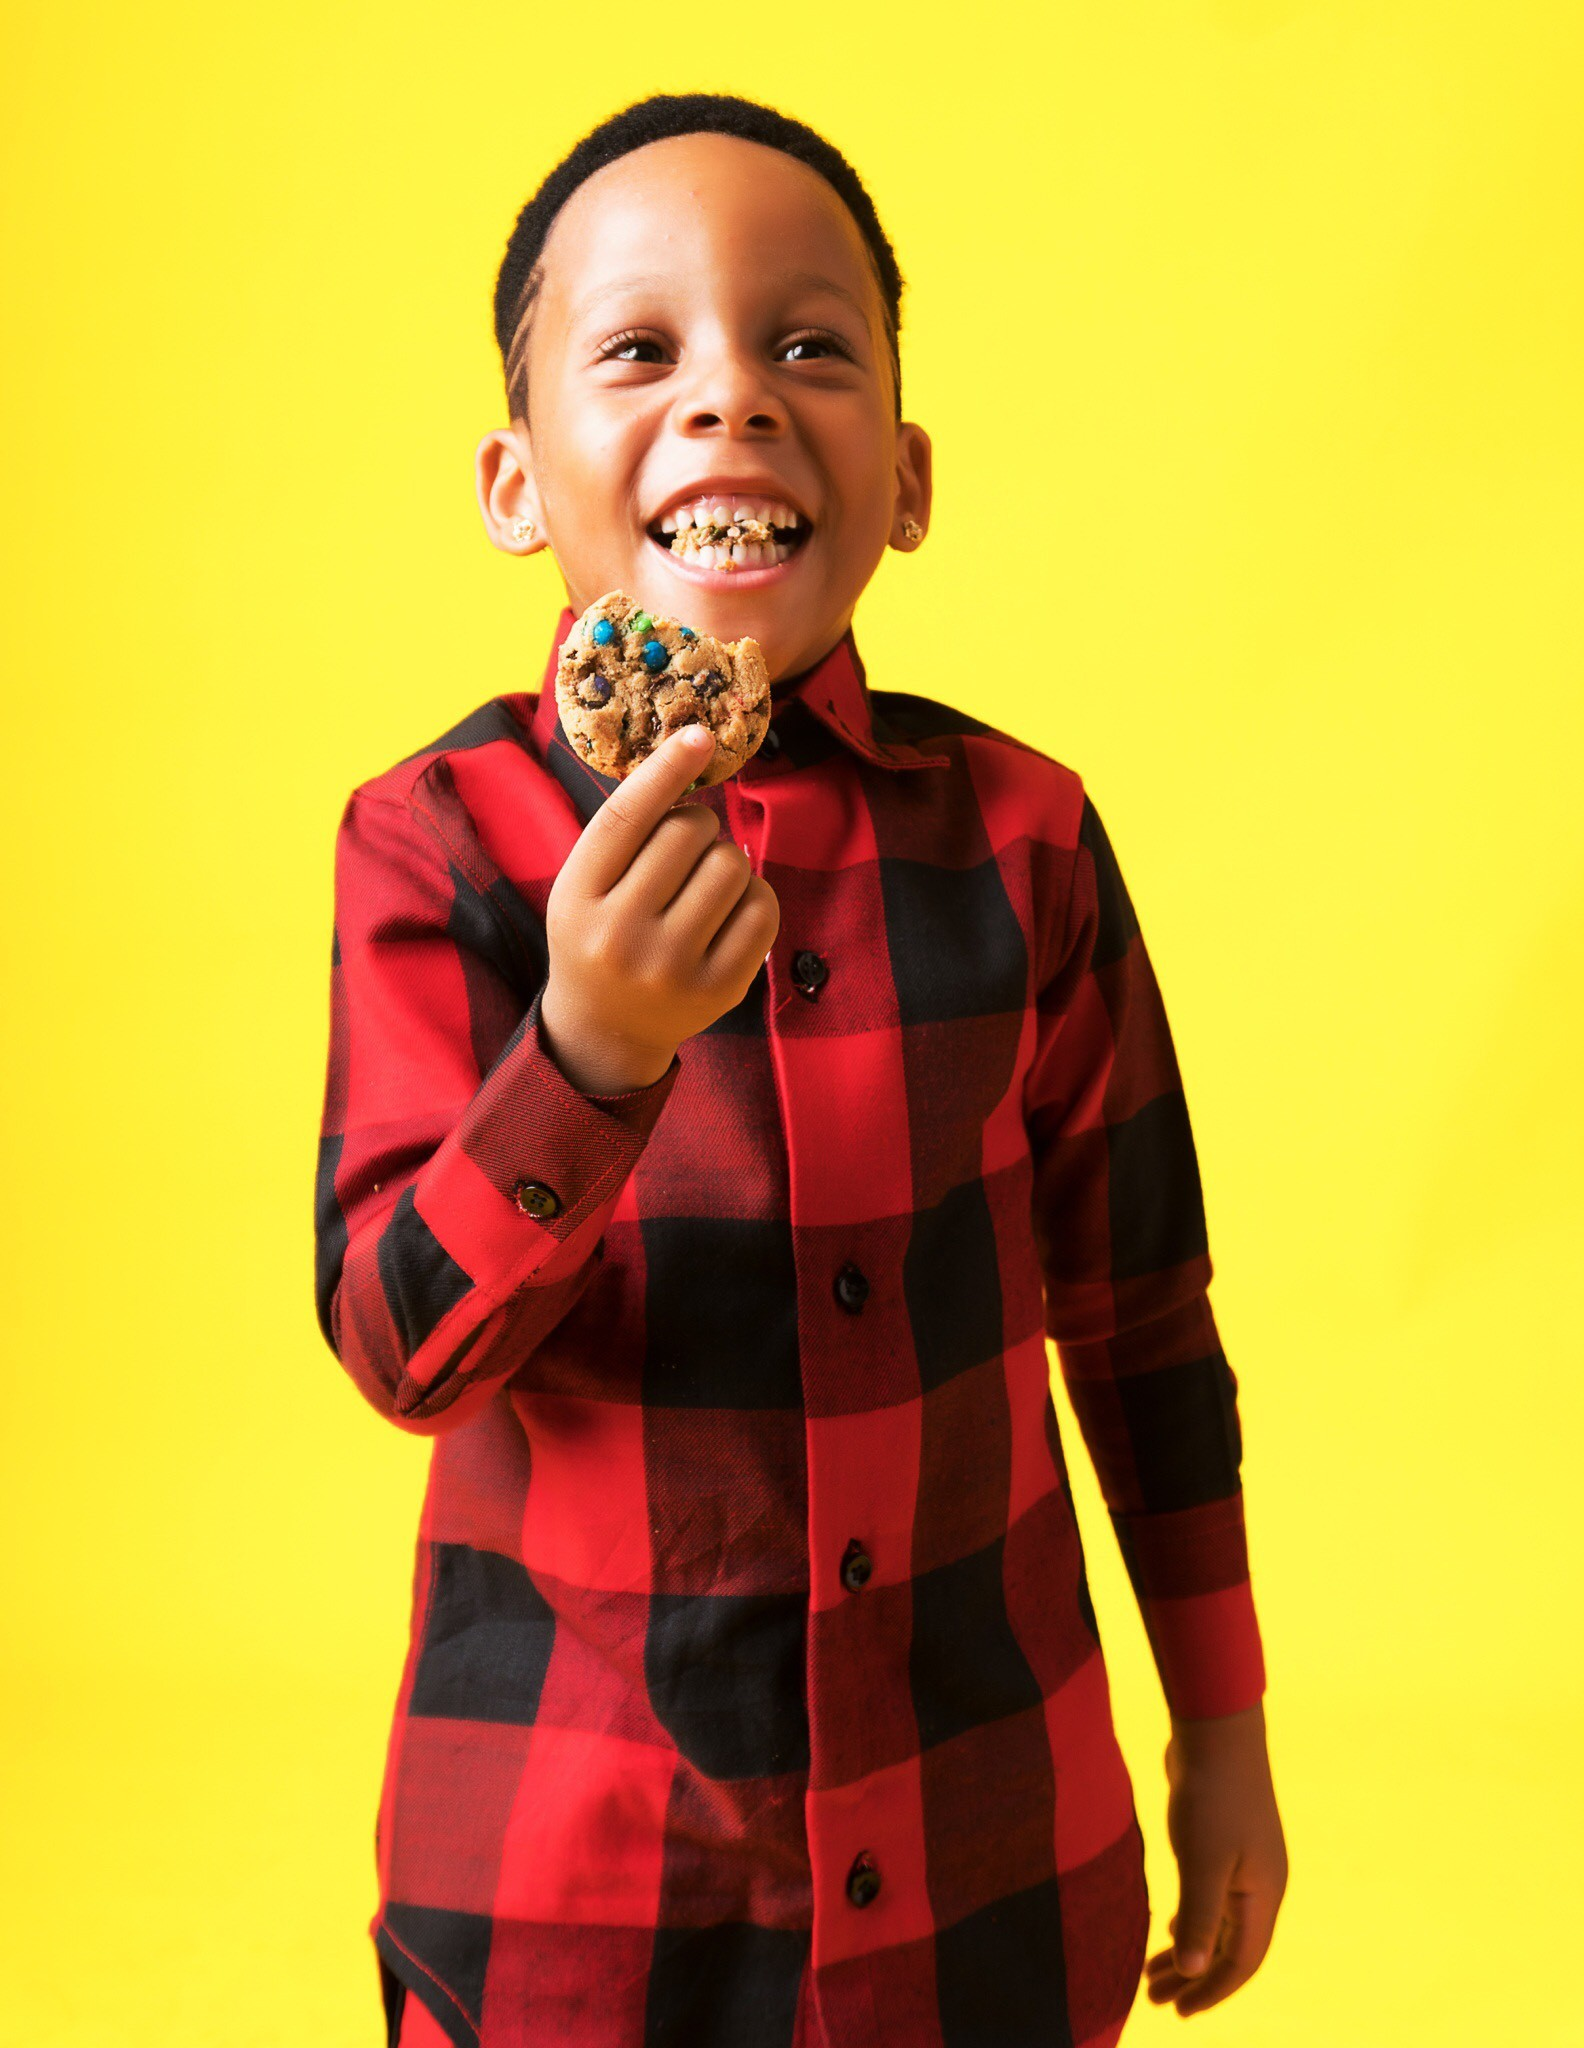 Lord Maine at five: Launches Youtube Channel and Biscuit brand